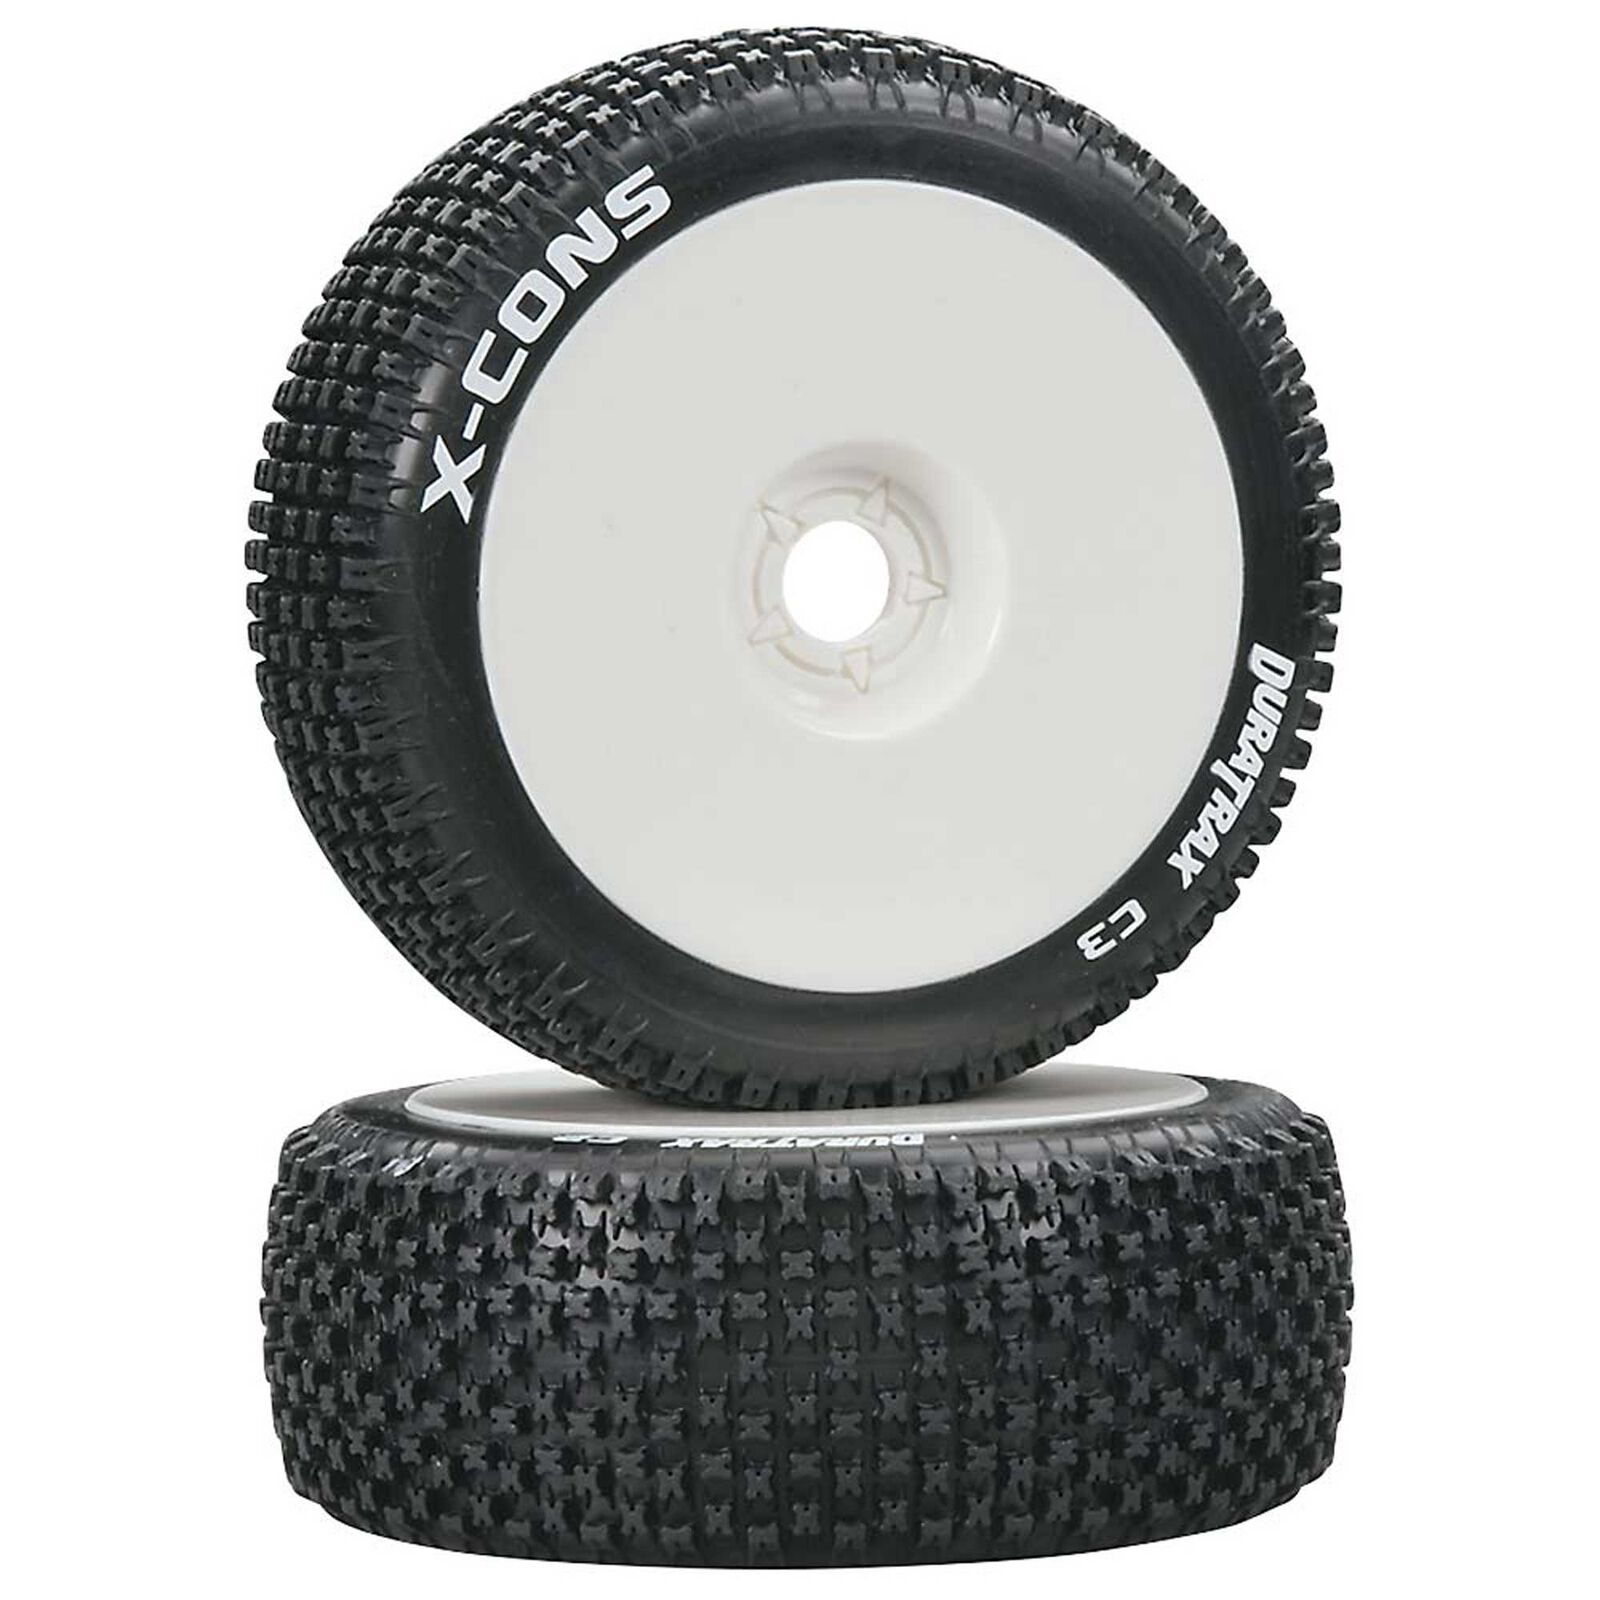 X-Cons 1/8 C3 Mounted Buggy Tires, White (2)